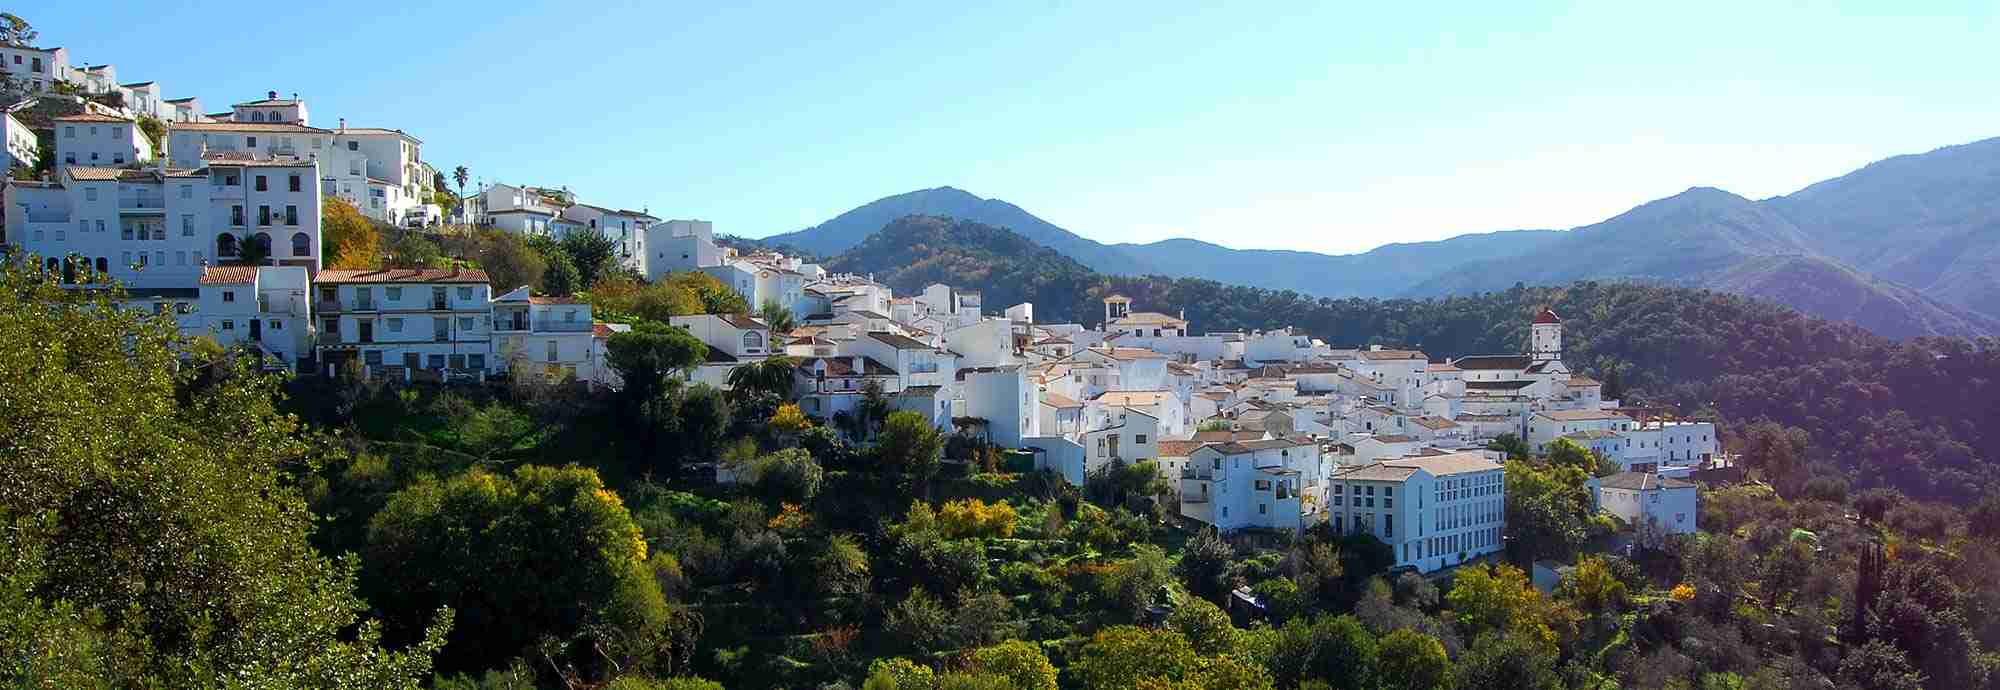 Holiday  Villas in Malaga